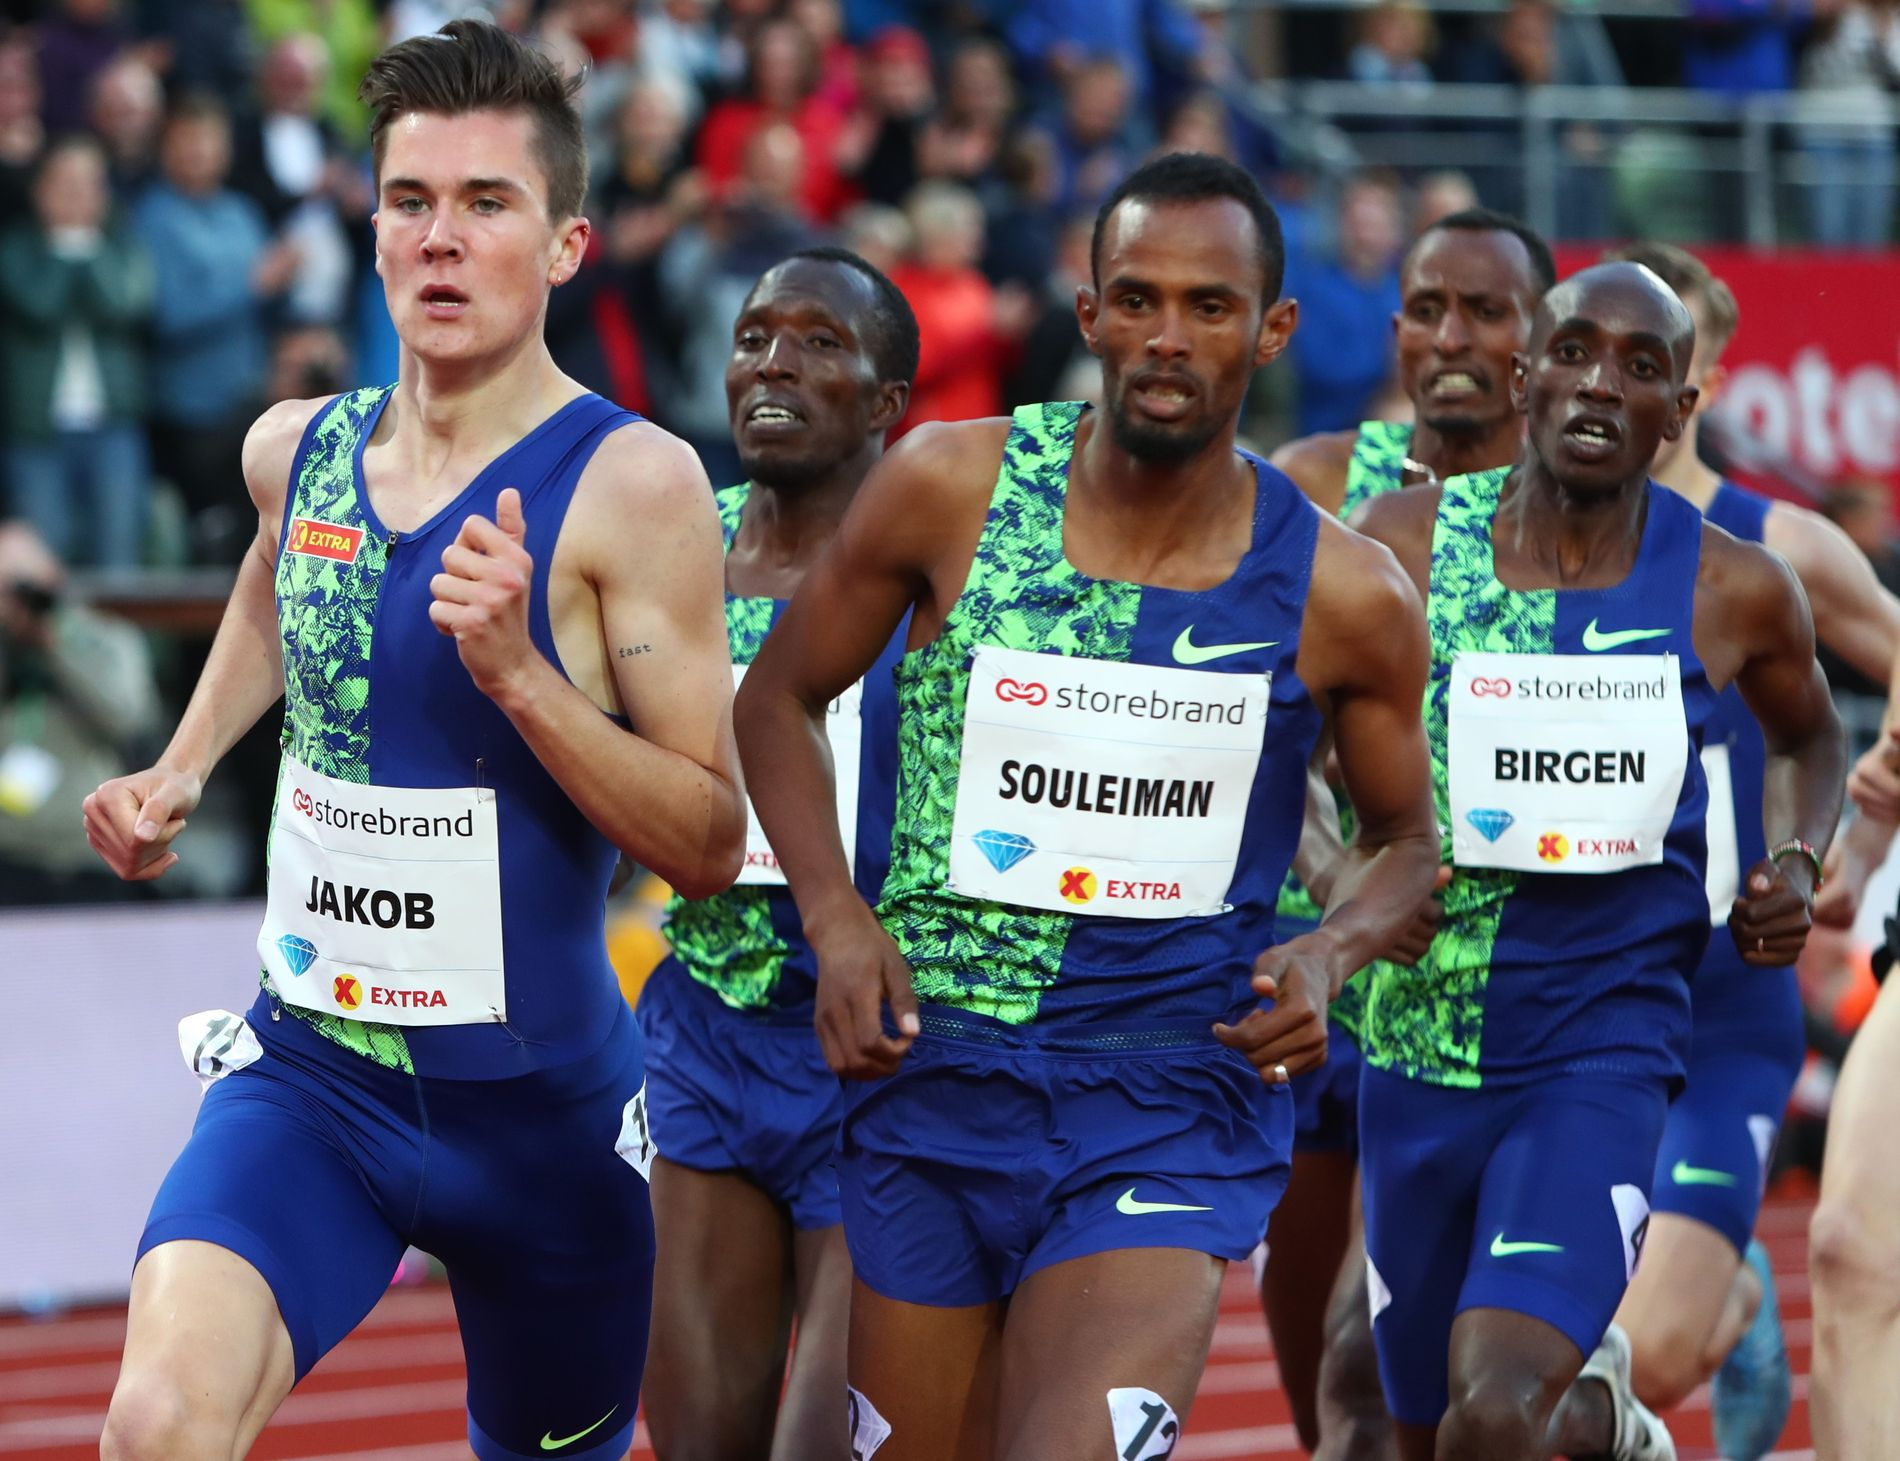 LIKE ILLE: Jakob Ingebrigtsen under milen (1609 meter) under Bislett Games 13. juni.